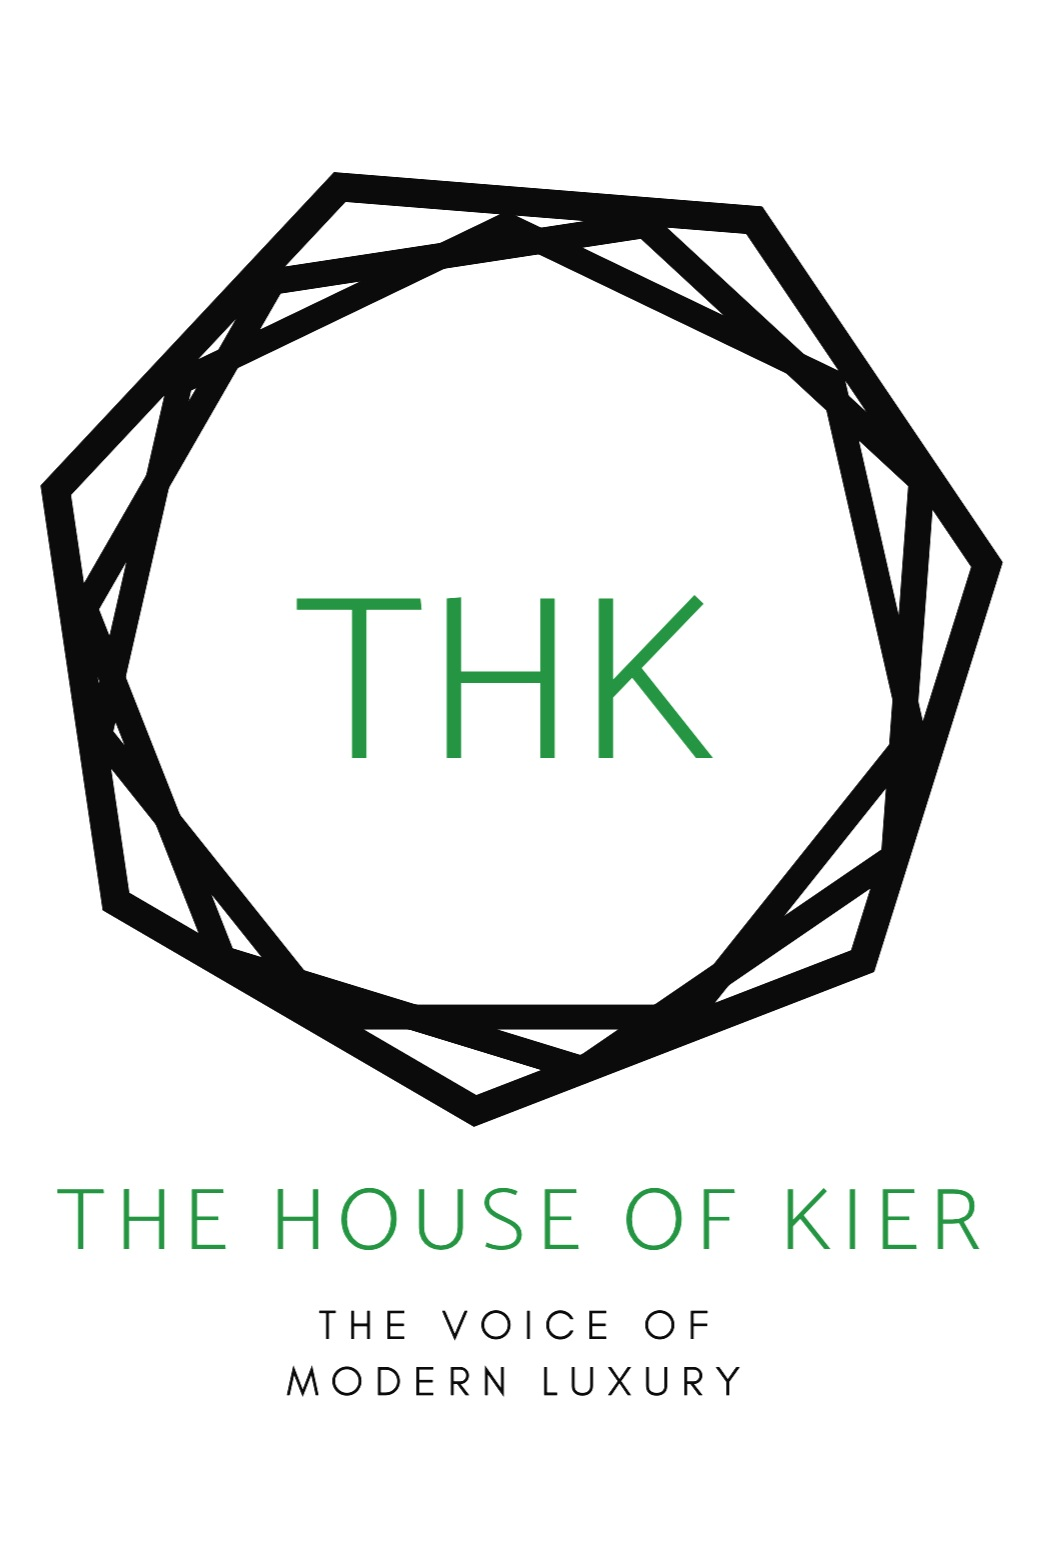 The House of Kier